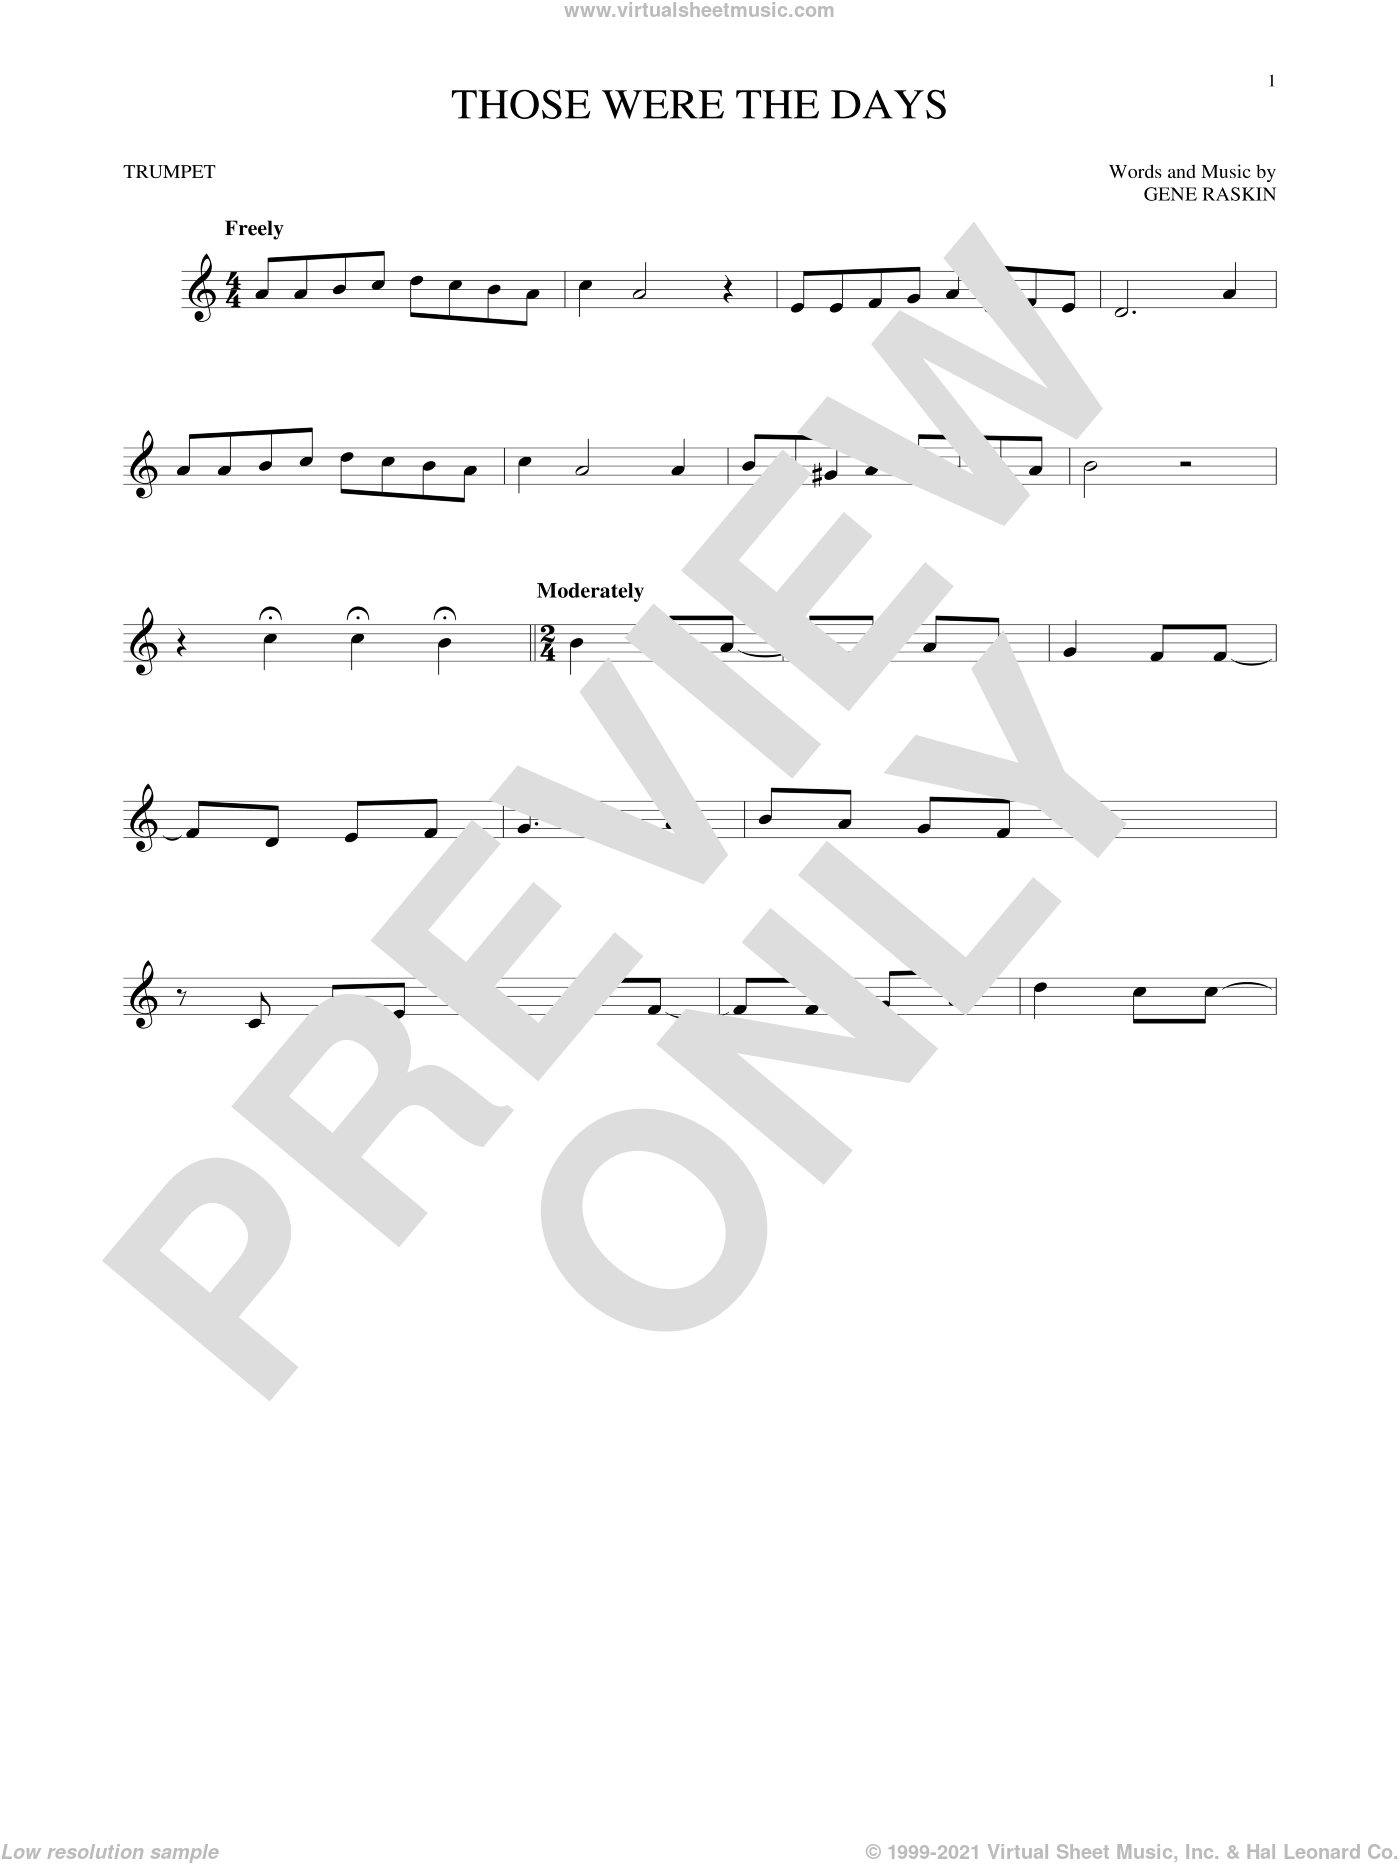 Those Were The Days sheet music for trumpet solo by Mary Hopkins and Gene Raskin, intermediate skill level